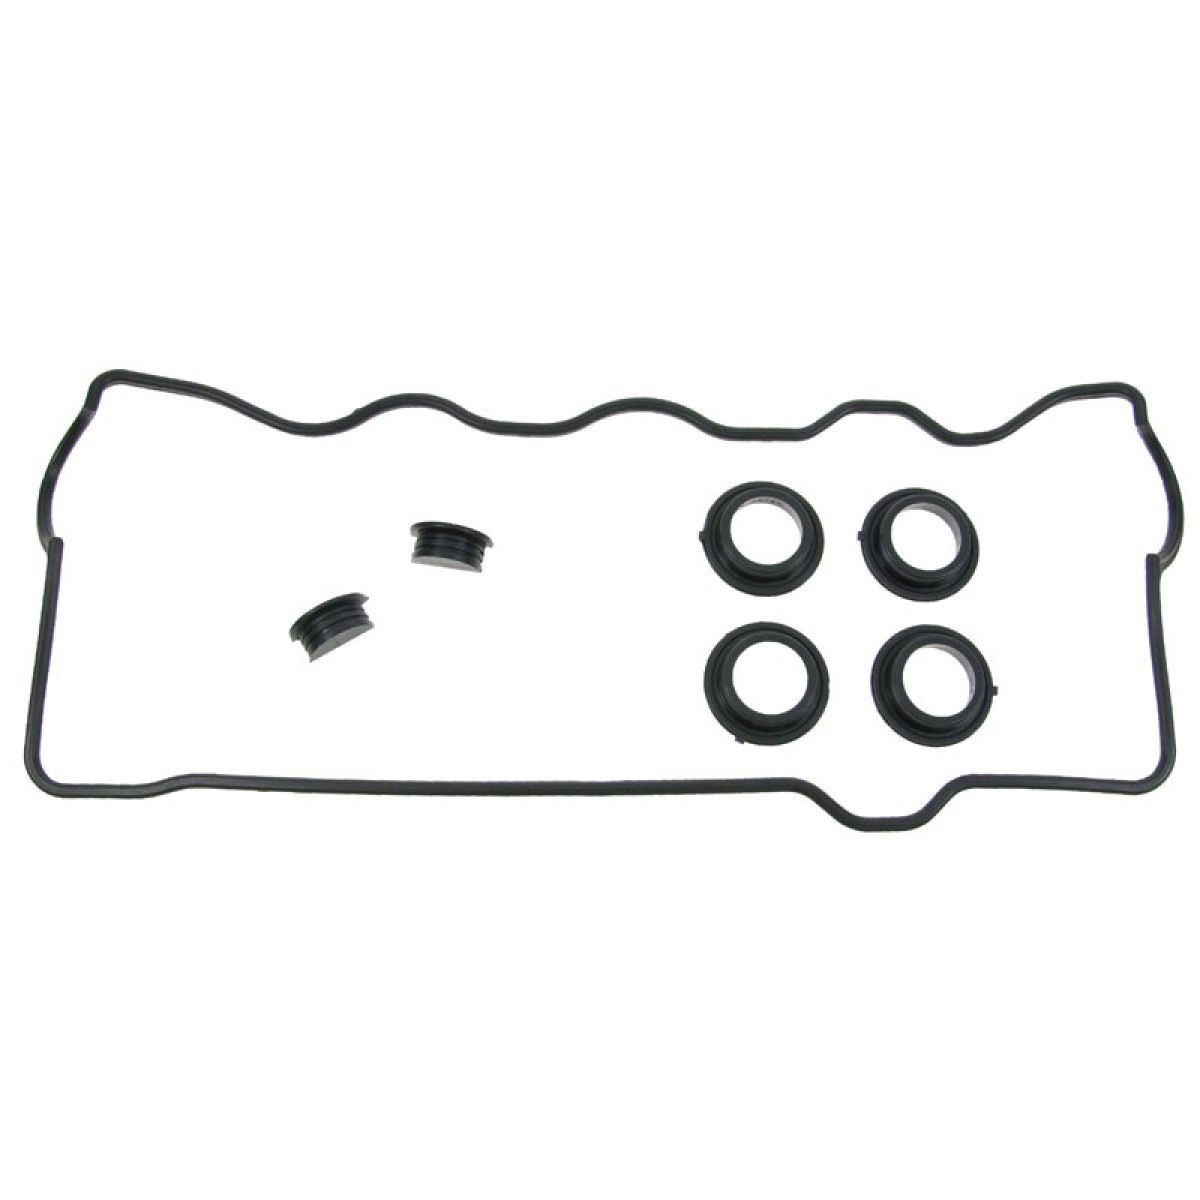 Valve Cover Gasket Set w/ Seals for Toyota Camry Celica